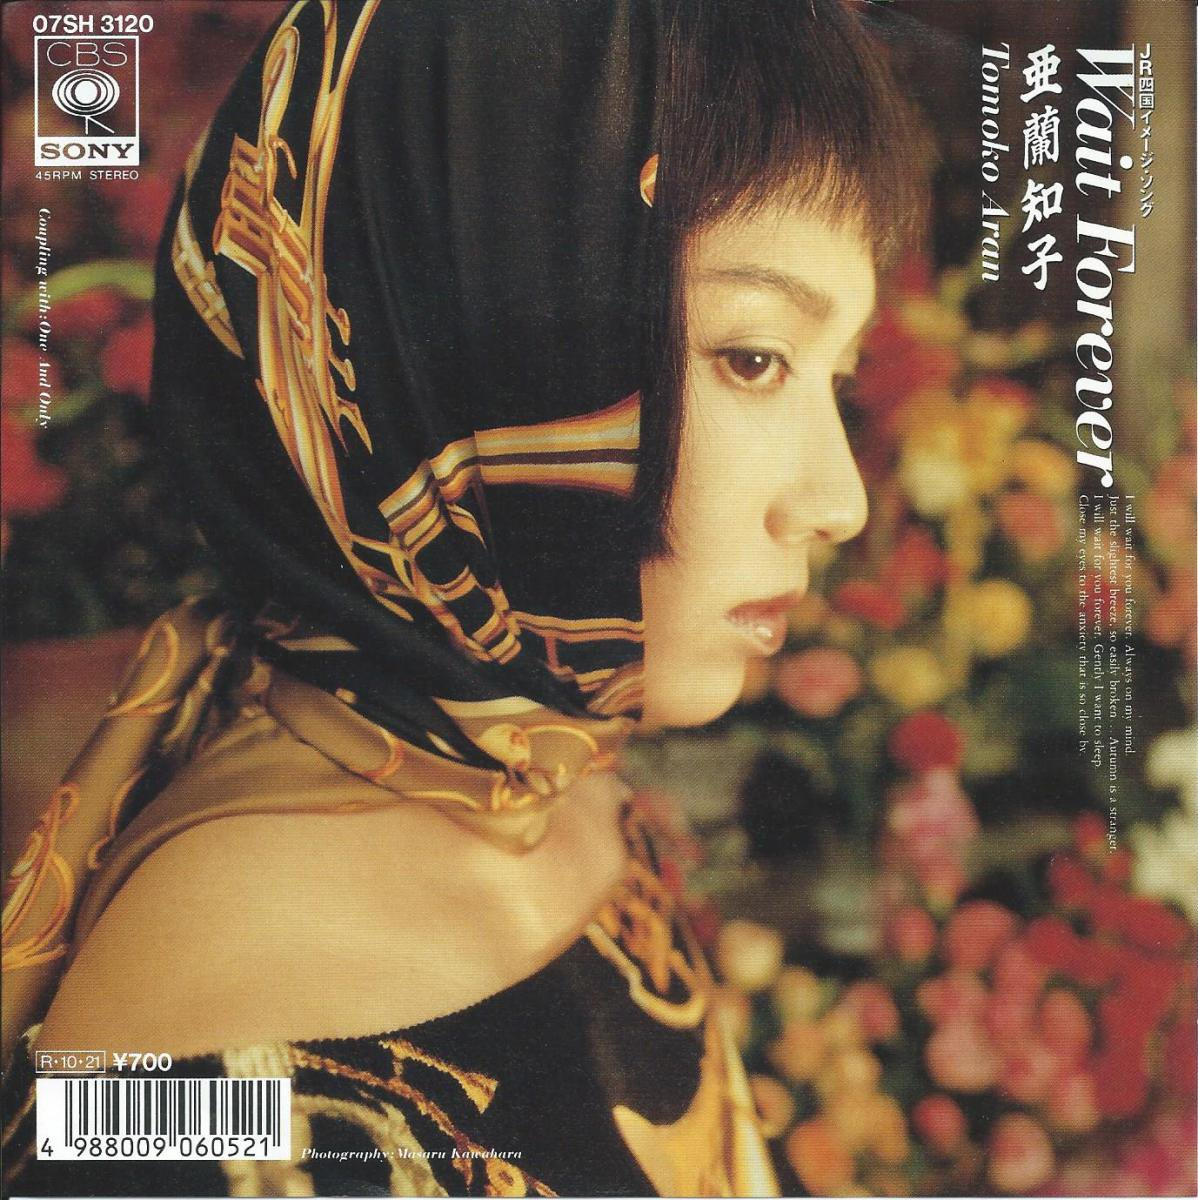 亜蘭知子 TOMOKO ARAN / WAIT FOREVER / ONE AND ONLY (7